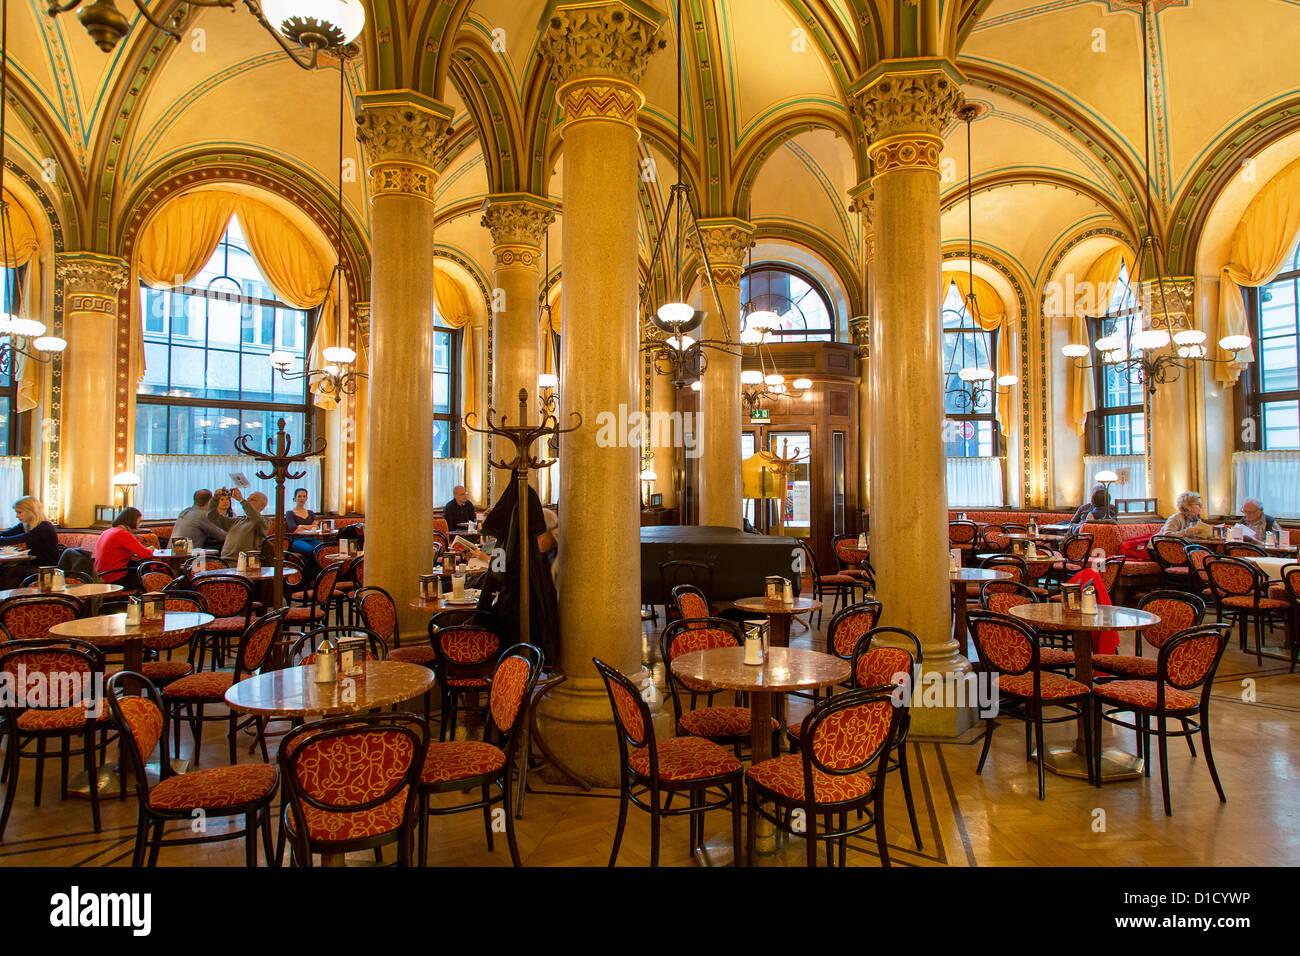 The famous Cafe Central is located in the Palais Ferstel - Stock Image